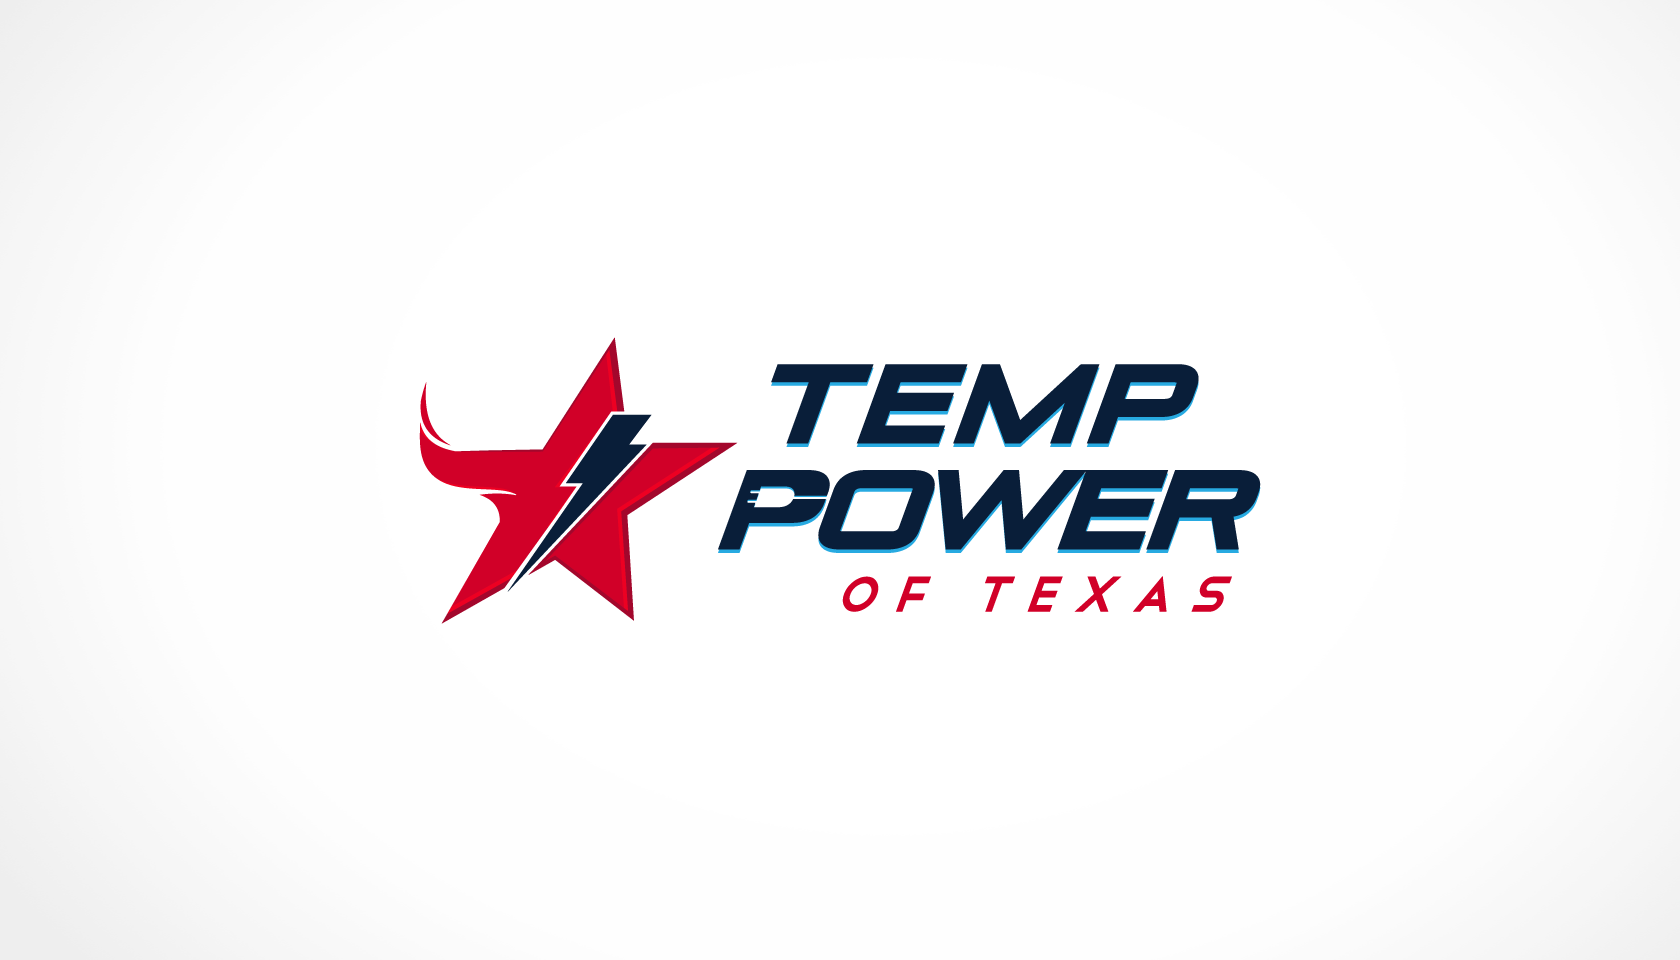 Bring your creative ideas!  Looking for new modern logo and website design for Temp Power of Texas!